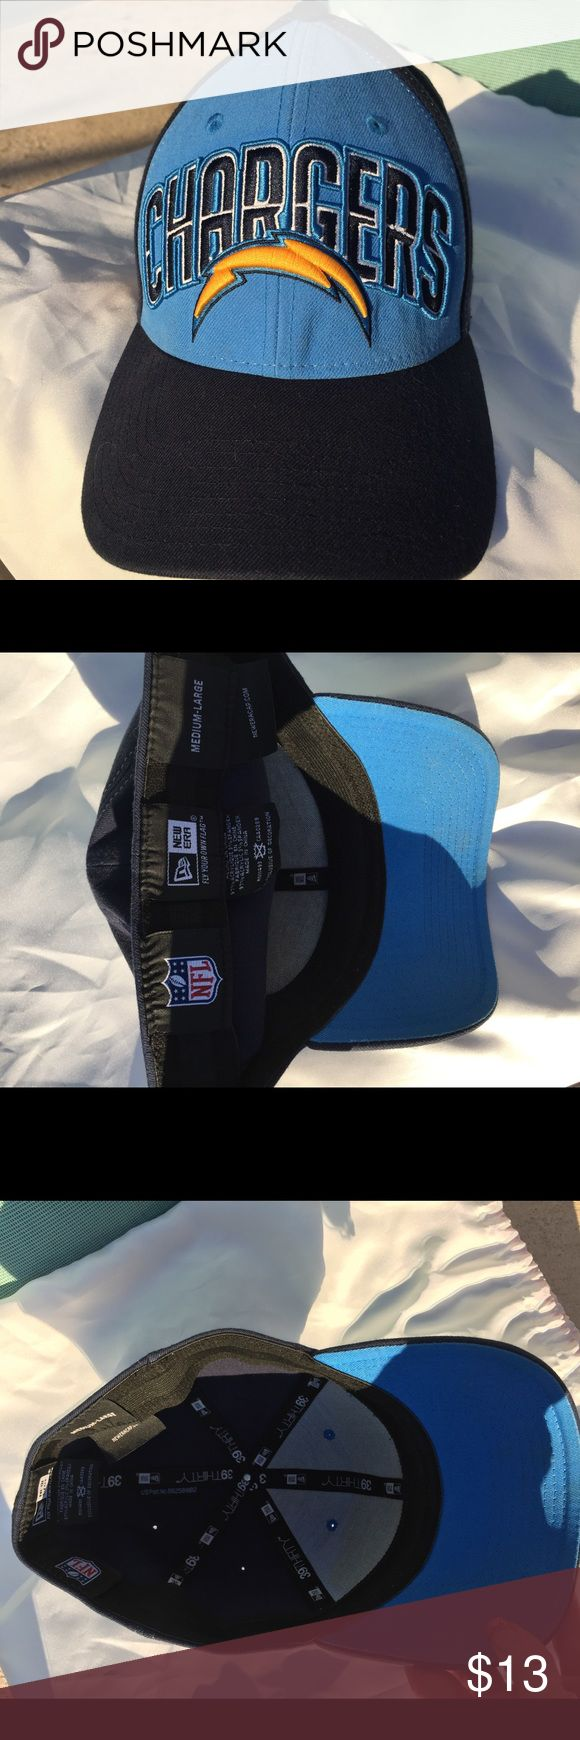 New Era 39 Thirty NFL Chargers Hat EUC Hat by New Era 39 Thirty; NFL licensed Chargers Hat in size medium- large New Era Accessories Hats